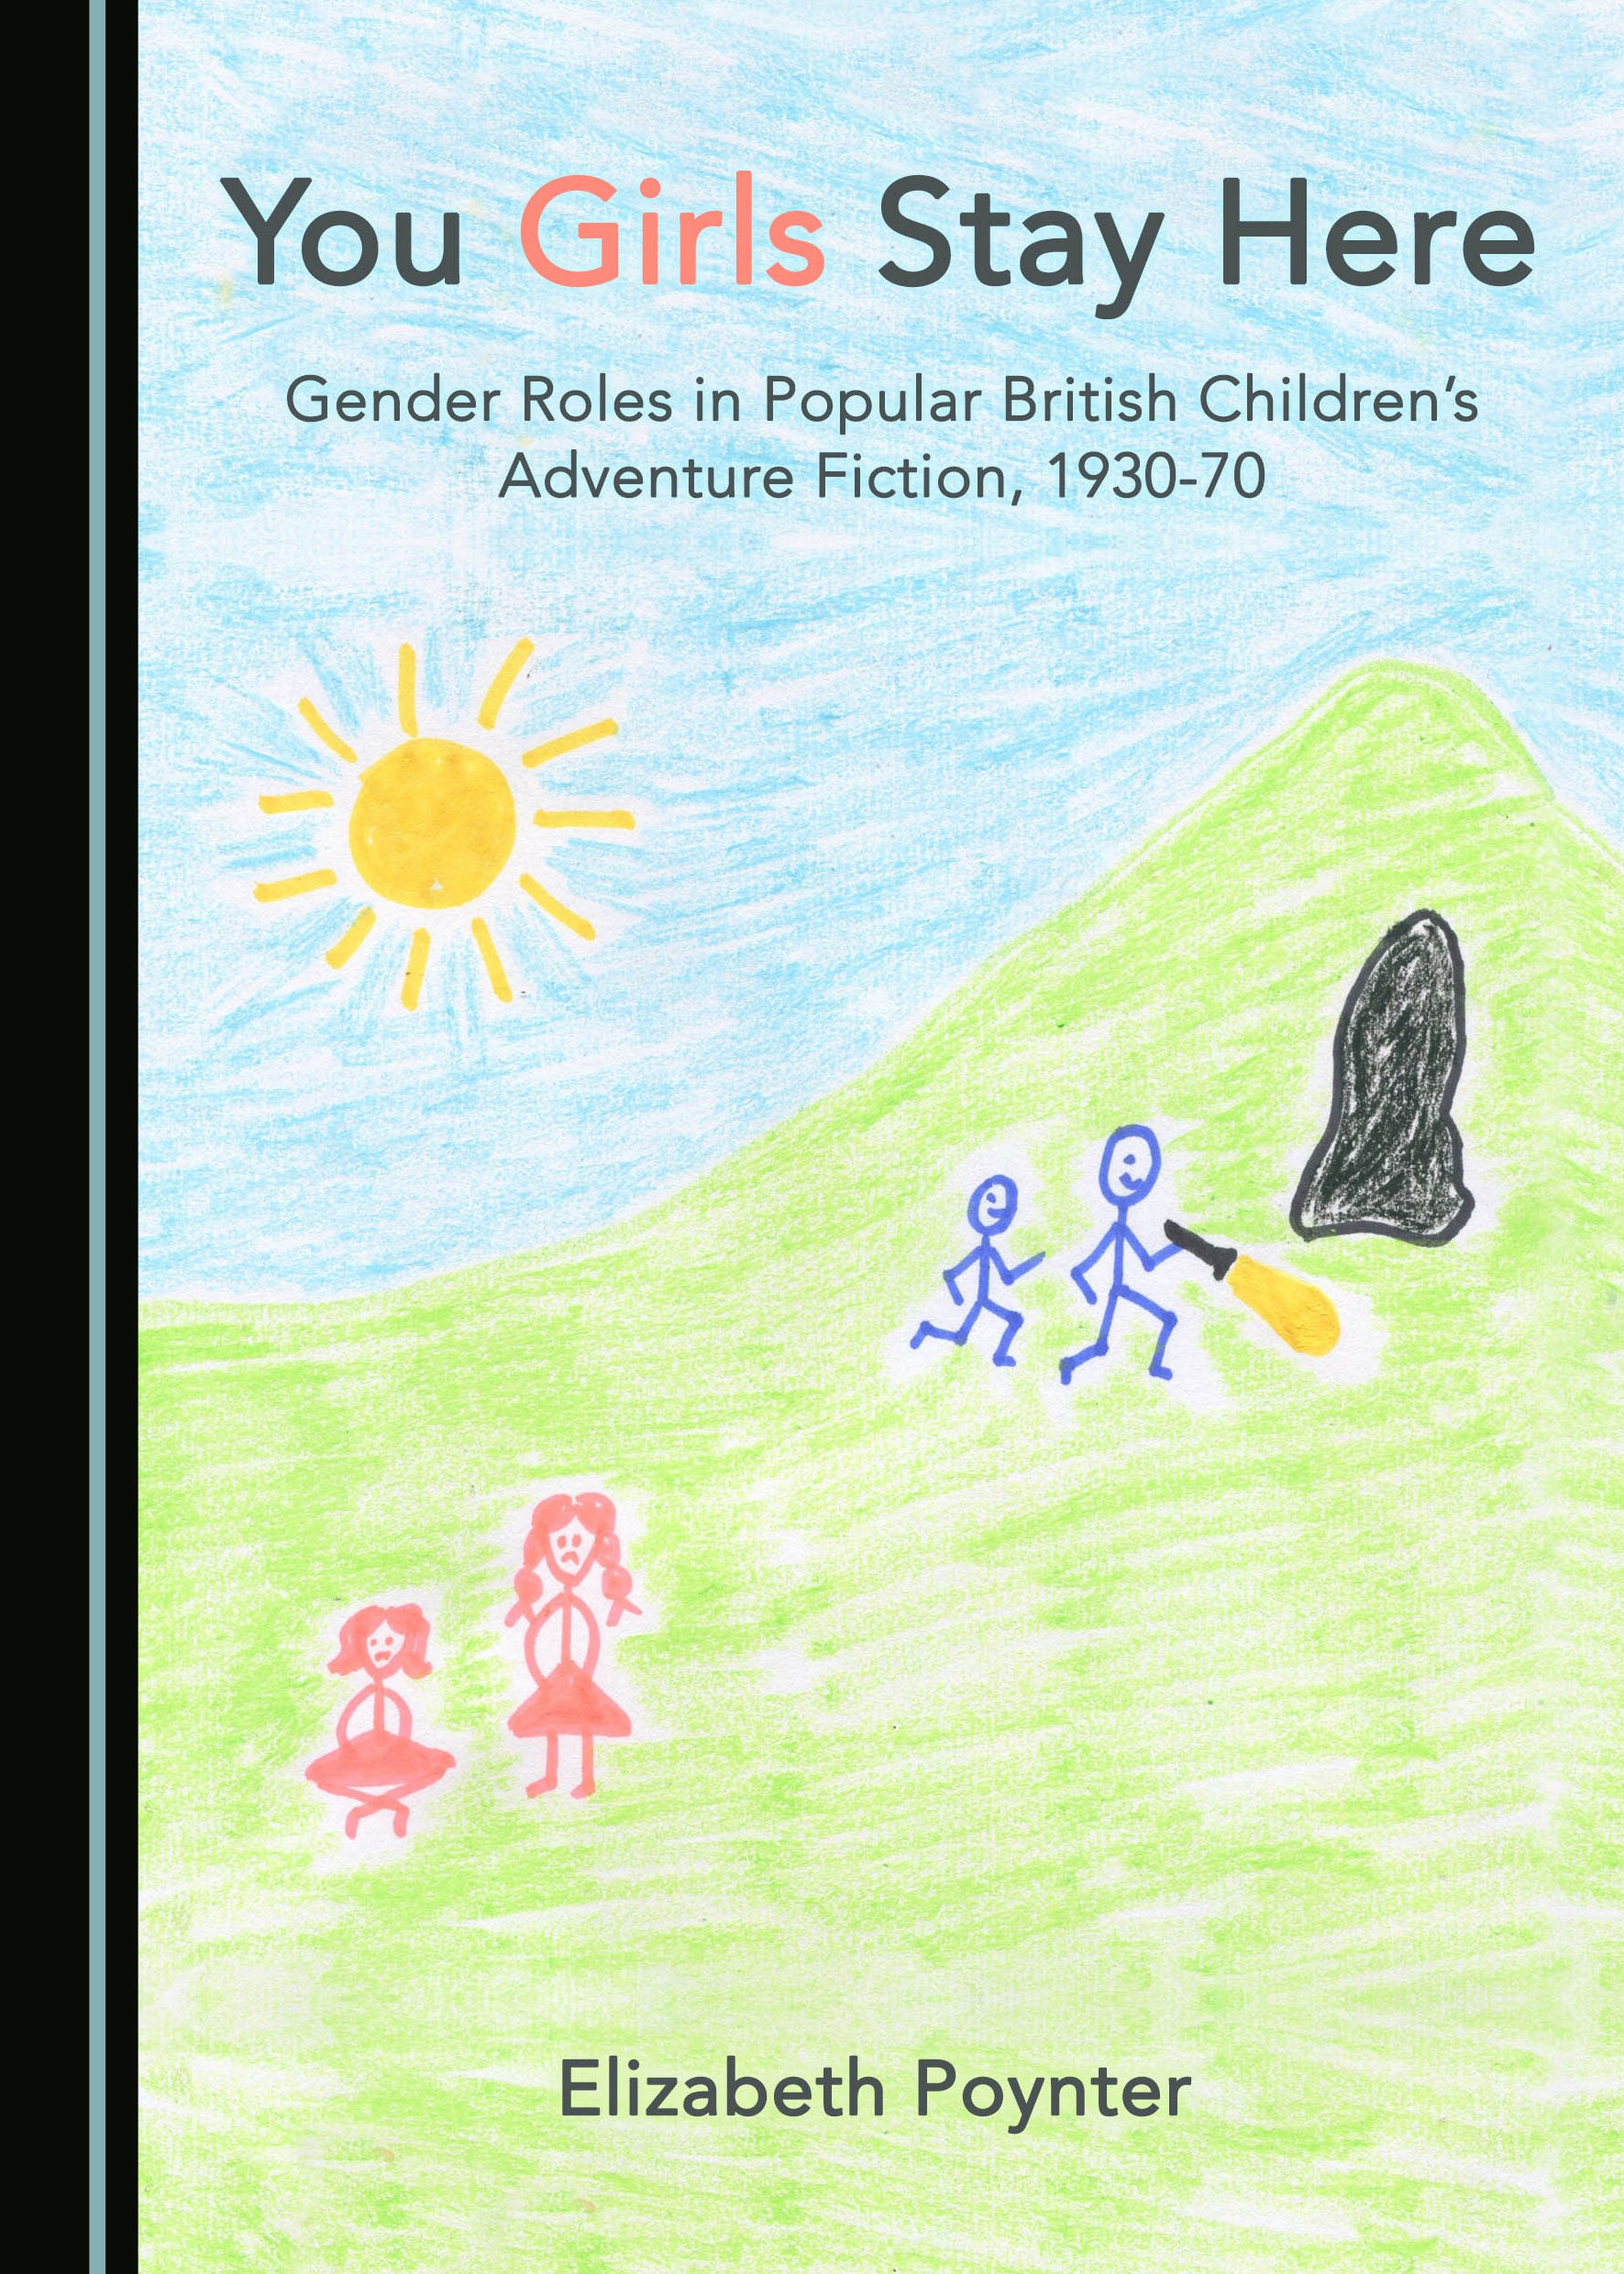 You Girls Stay Here: Gender Roles in Popular British Children's Adventure Fiction, 1930-70